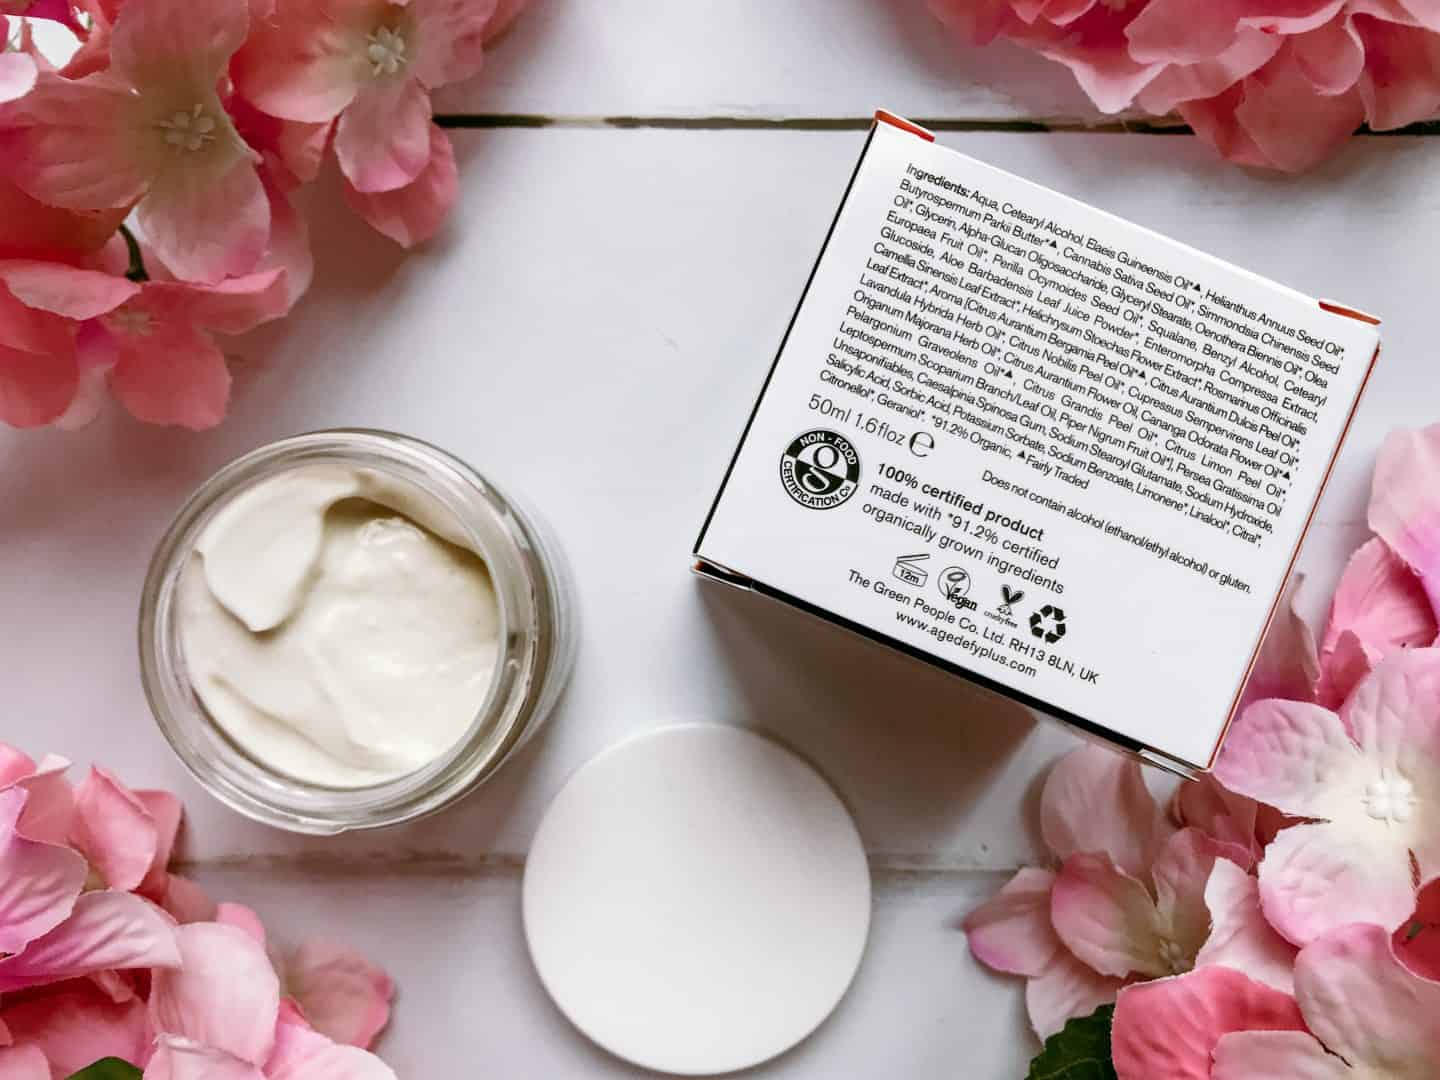 Organic Skincare for 35+ from Green People- Age Defy+ by Cha Vøhtz Hydra-Glow Sleep Mask ingredients